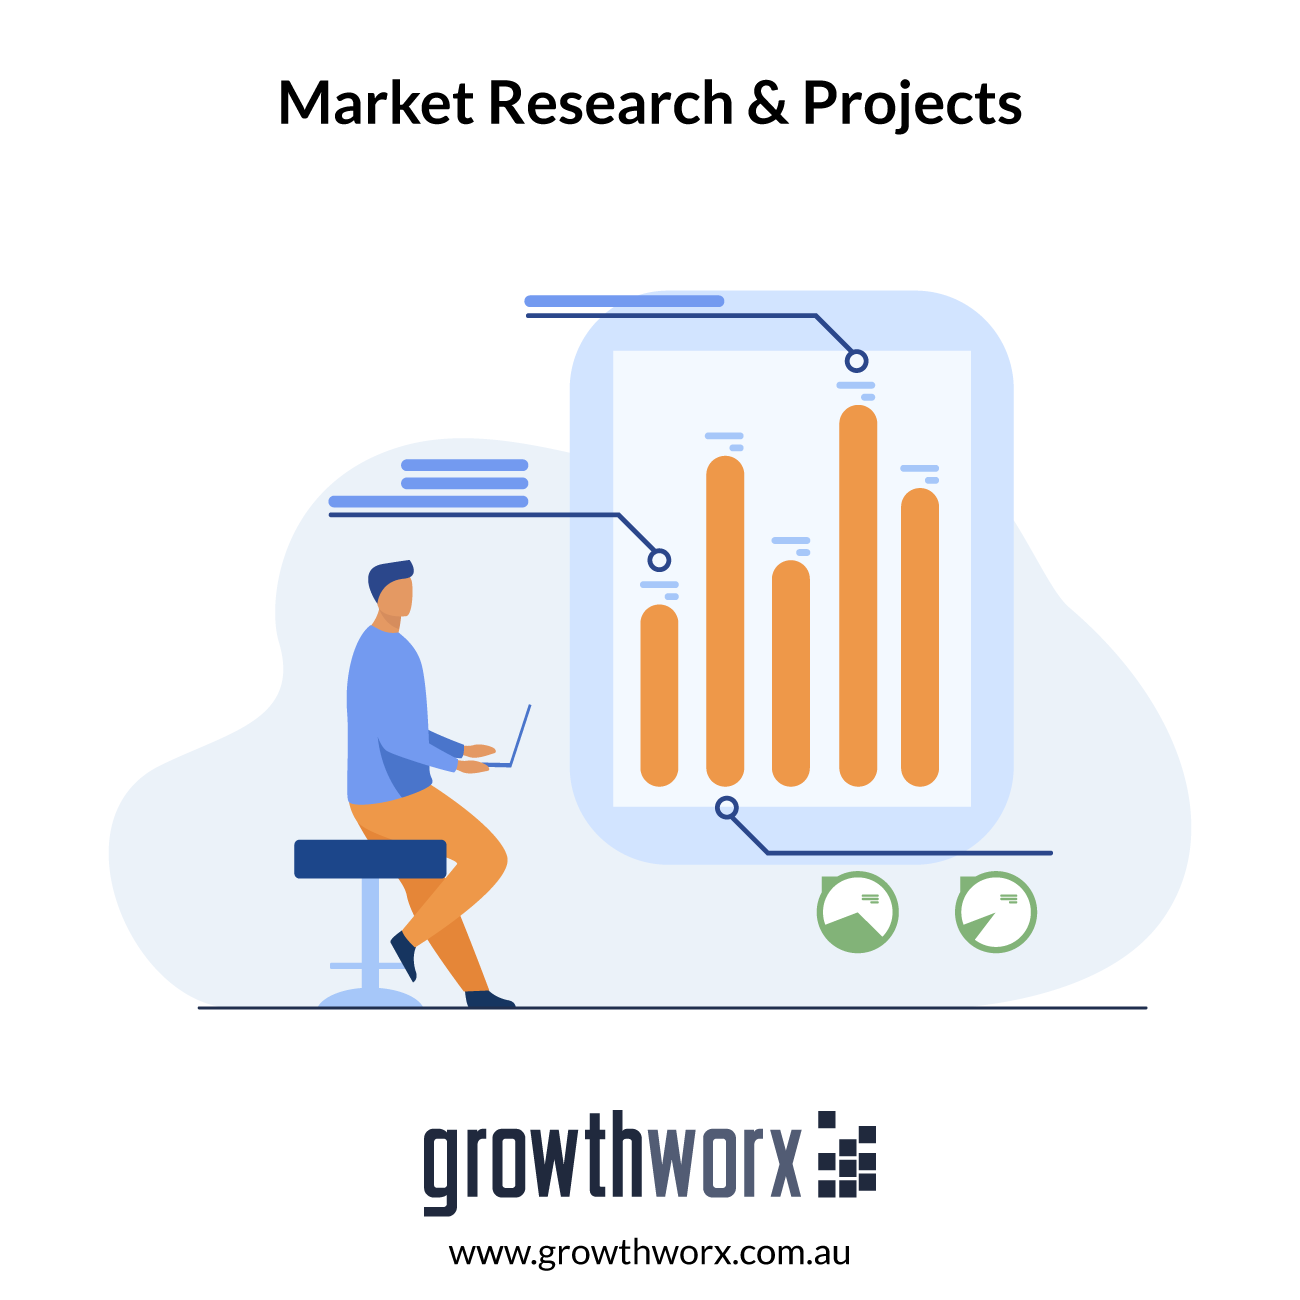 We will do market research and marketing projects 1